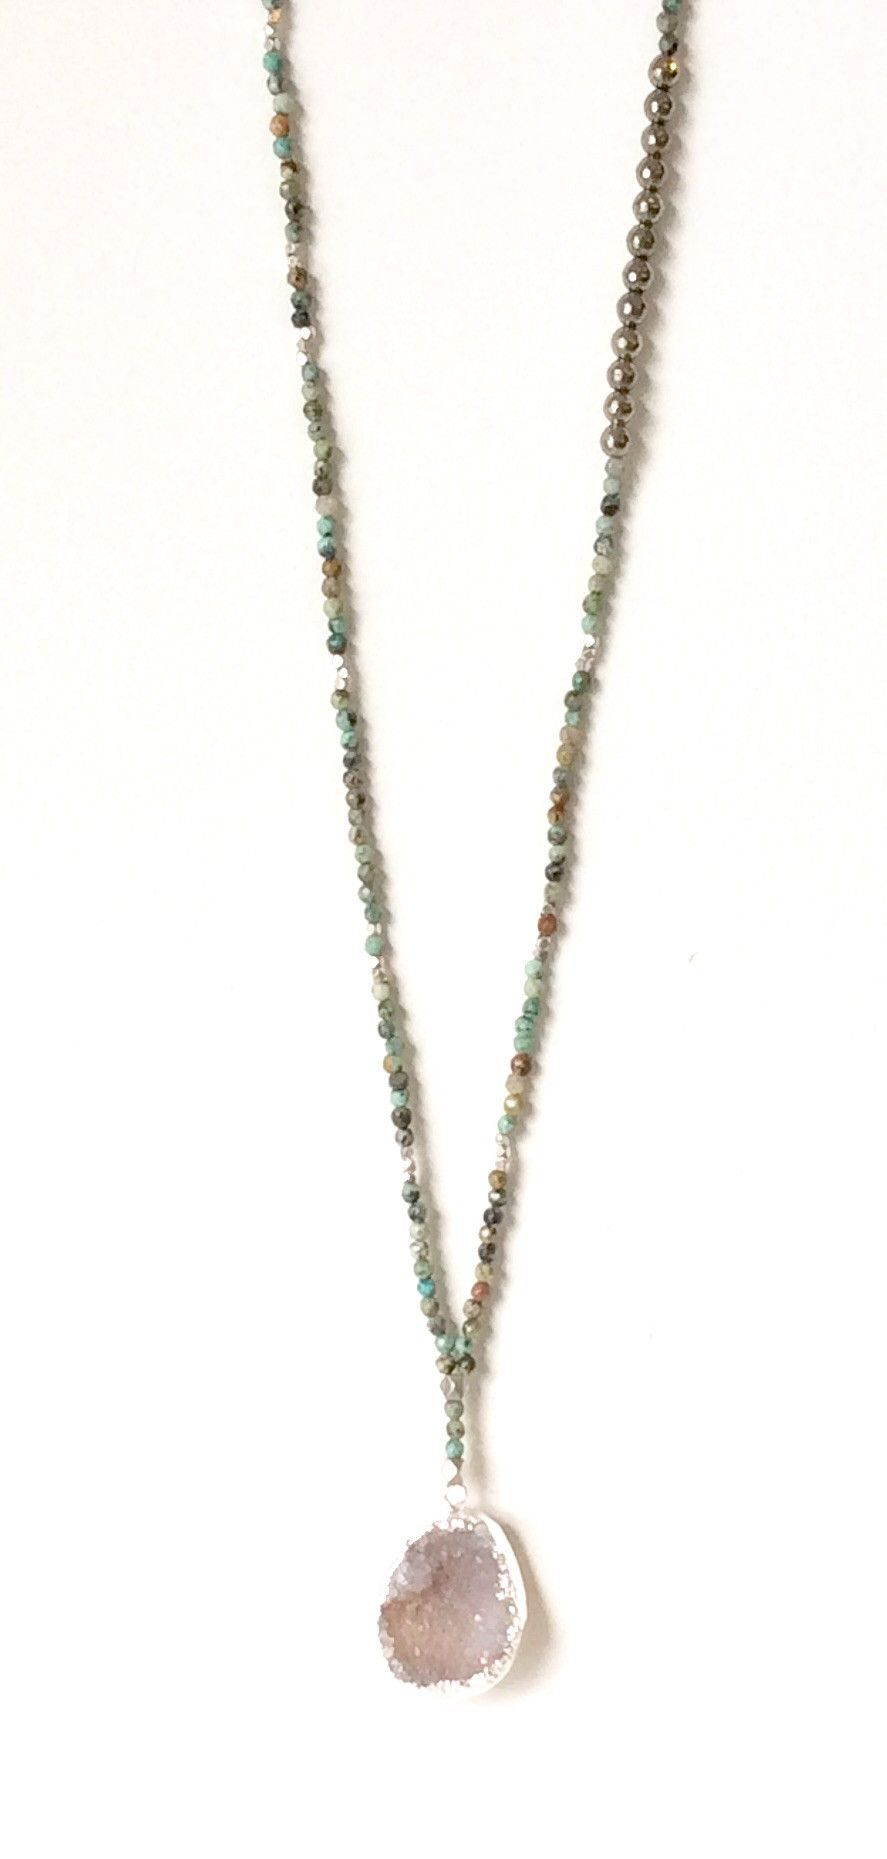 Gorjana Power Gemstone Pyrite Necklace for Intuition PxG1CB